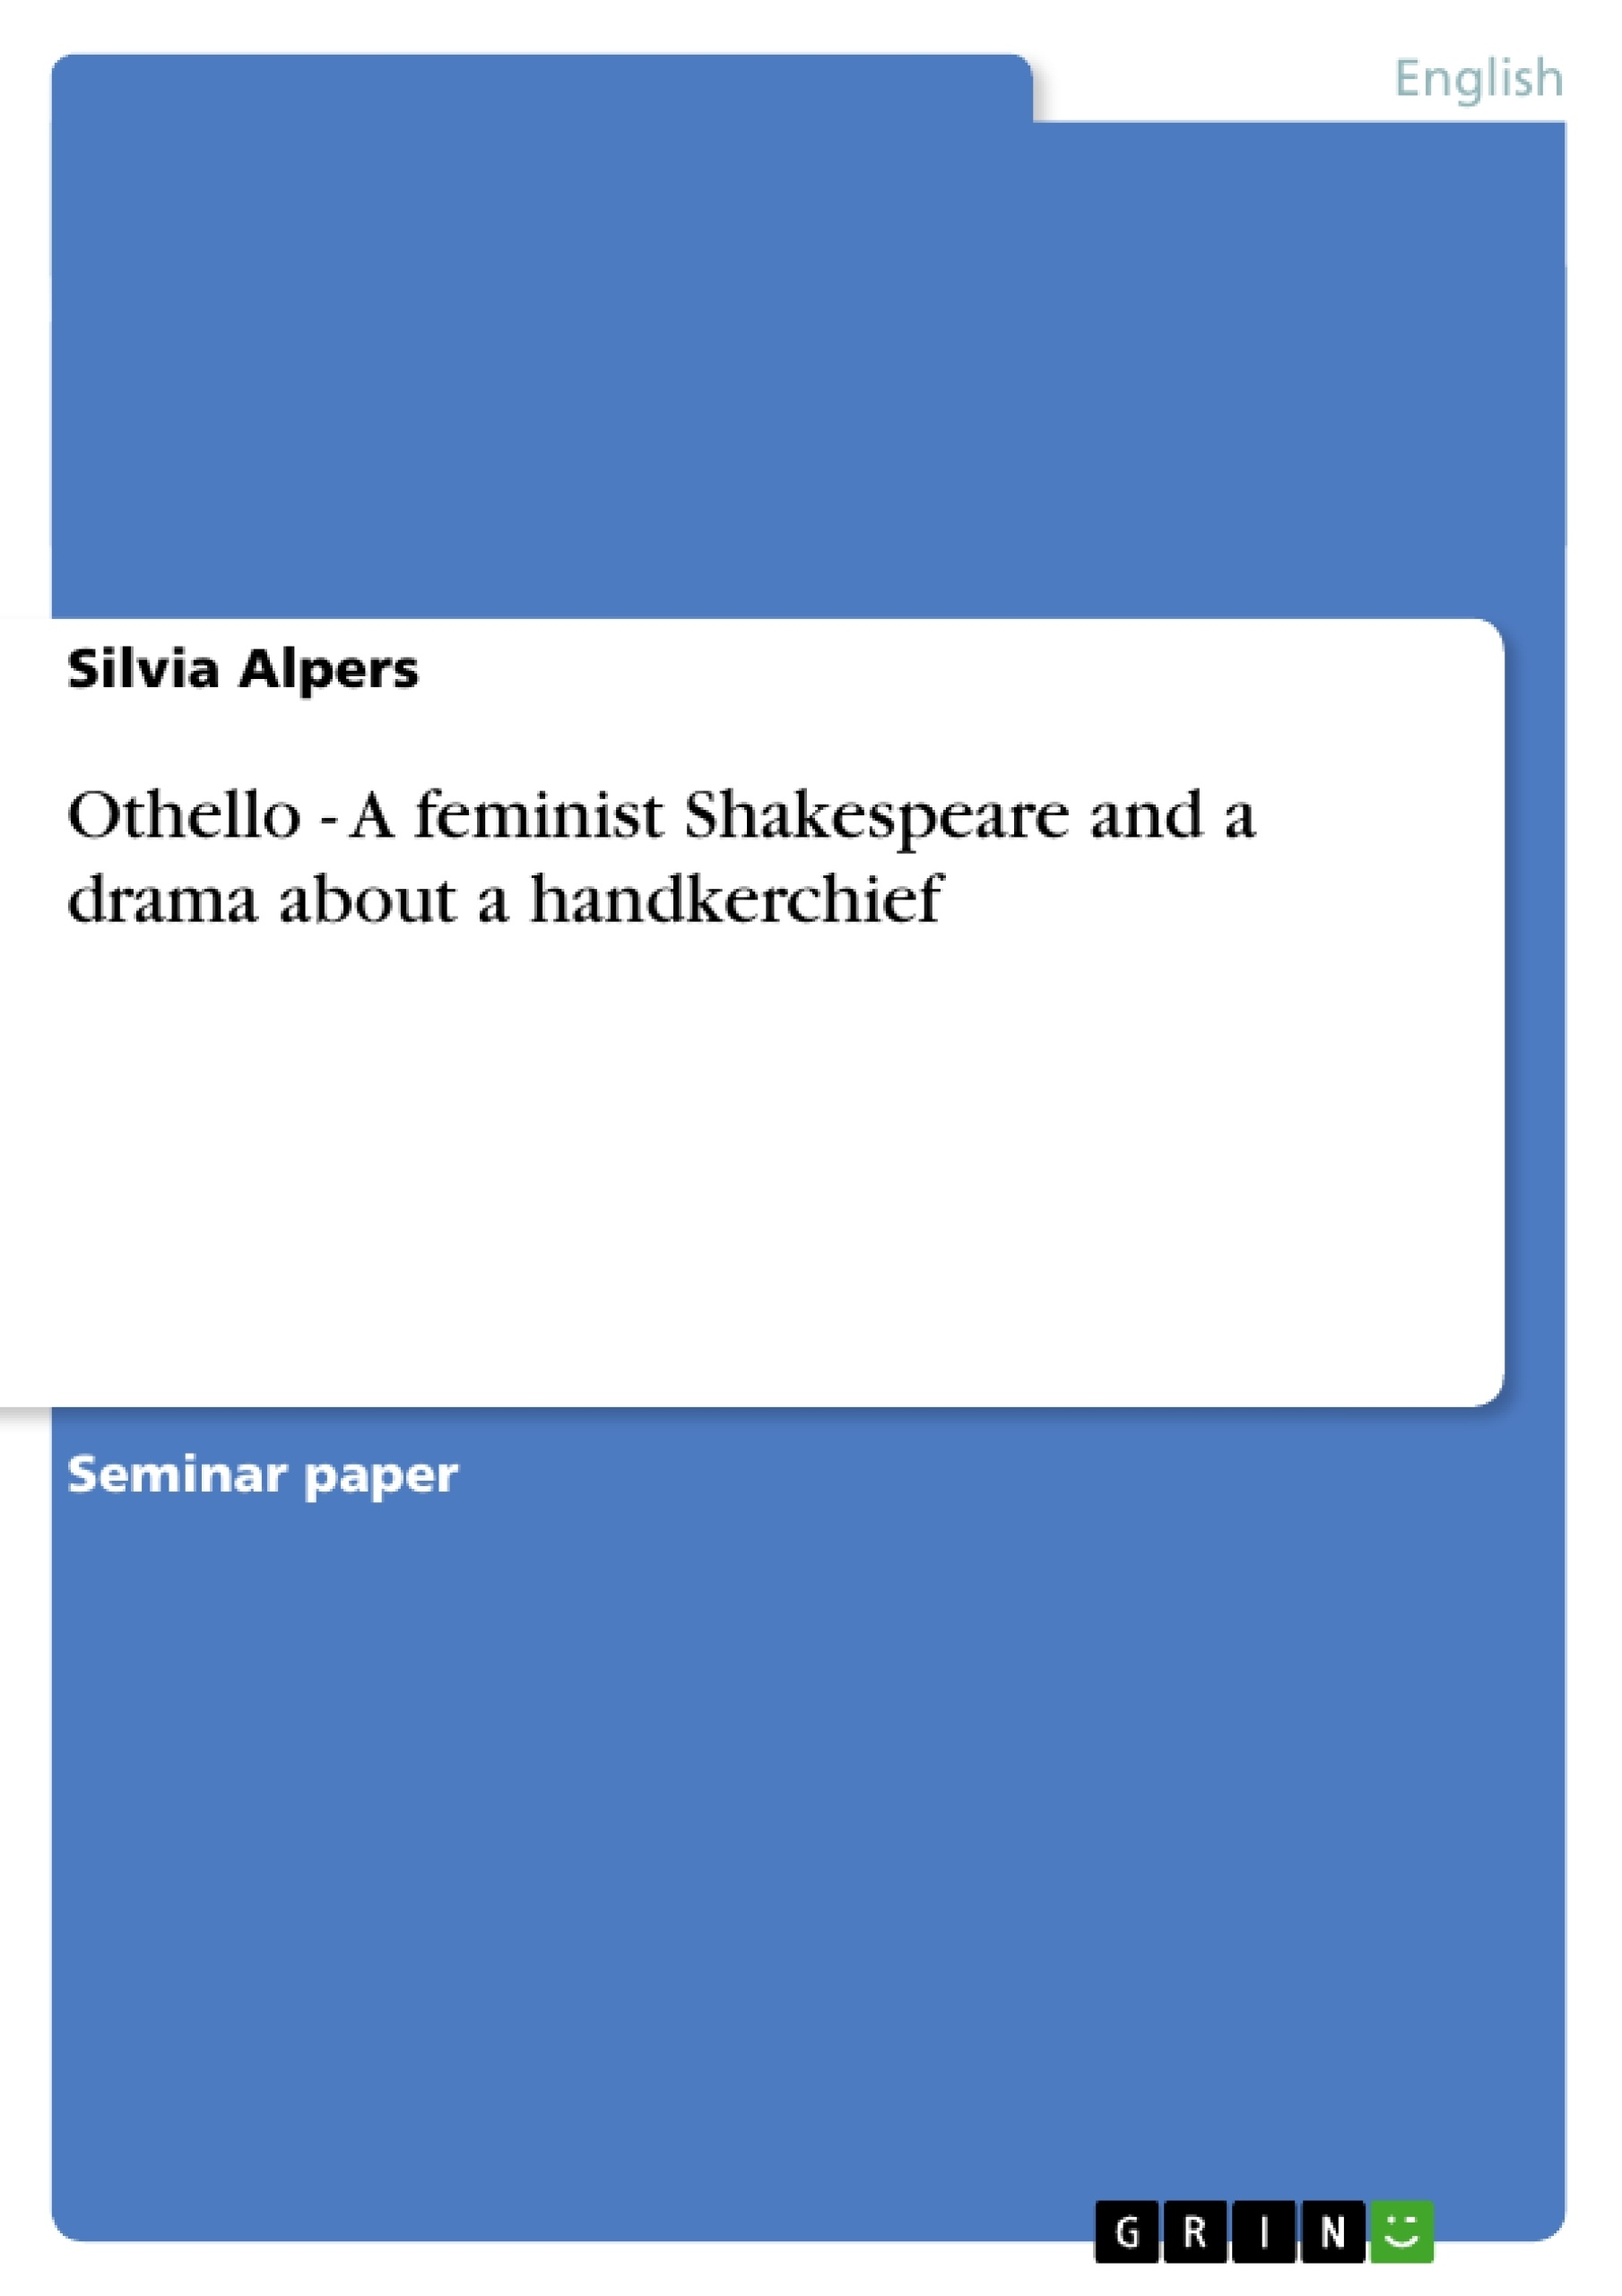 Title: Othello - A feminist Shakespeare and a drama about a handkerchief